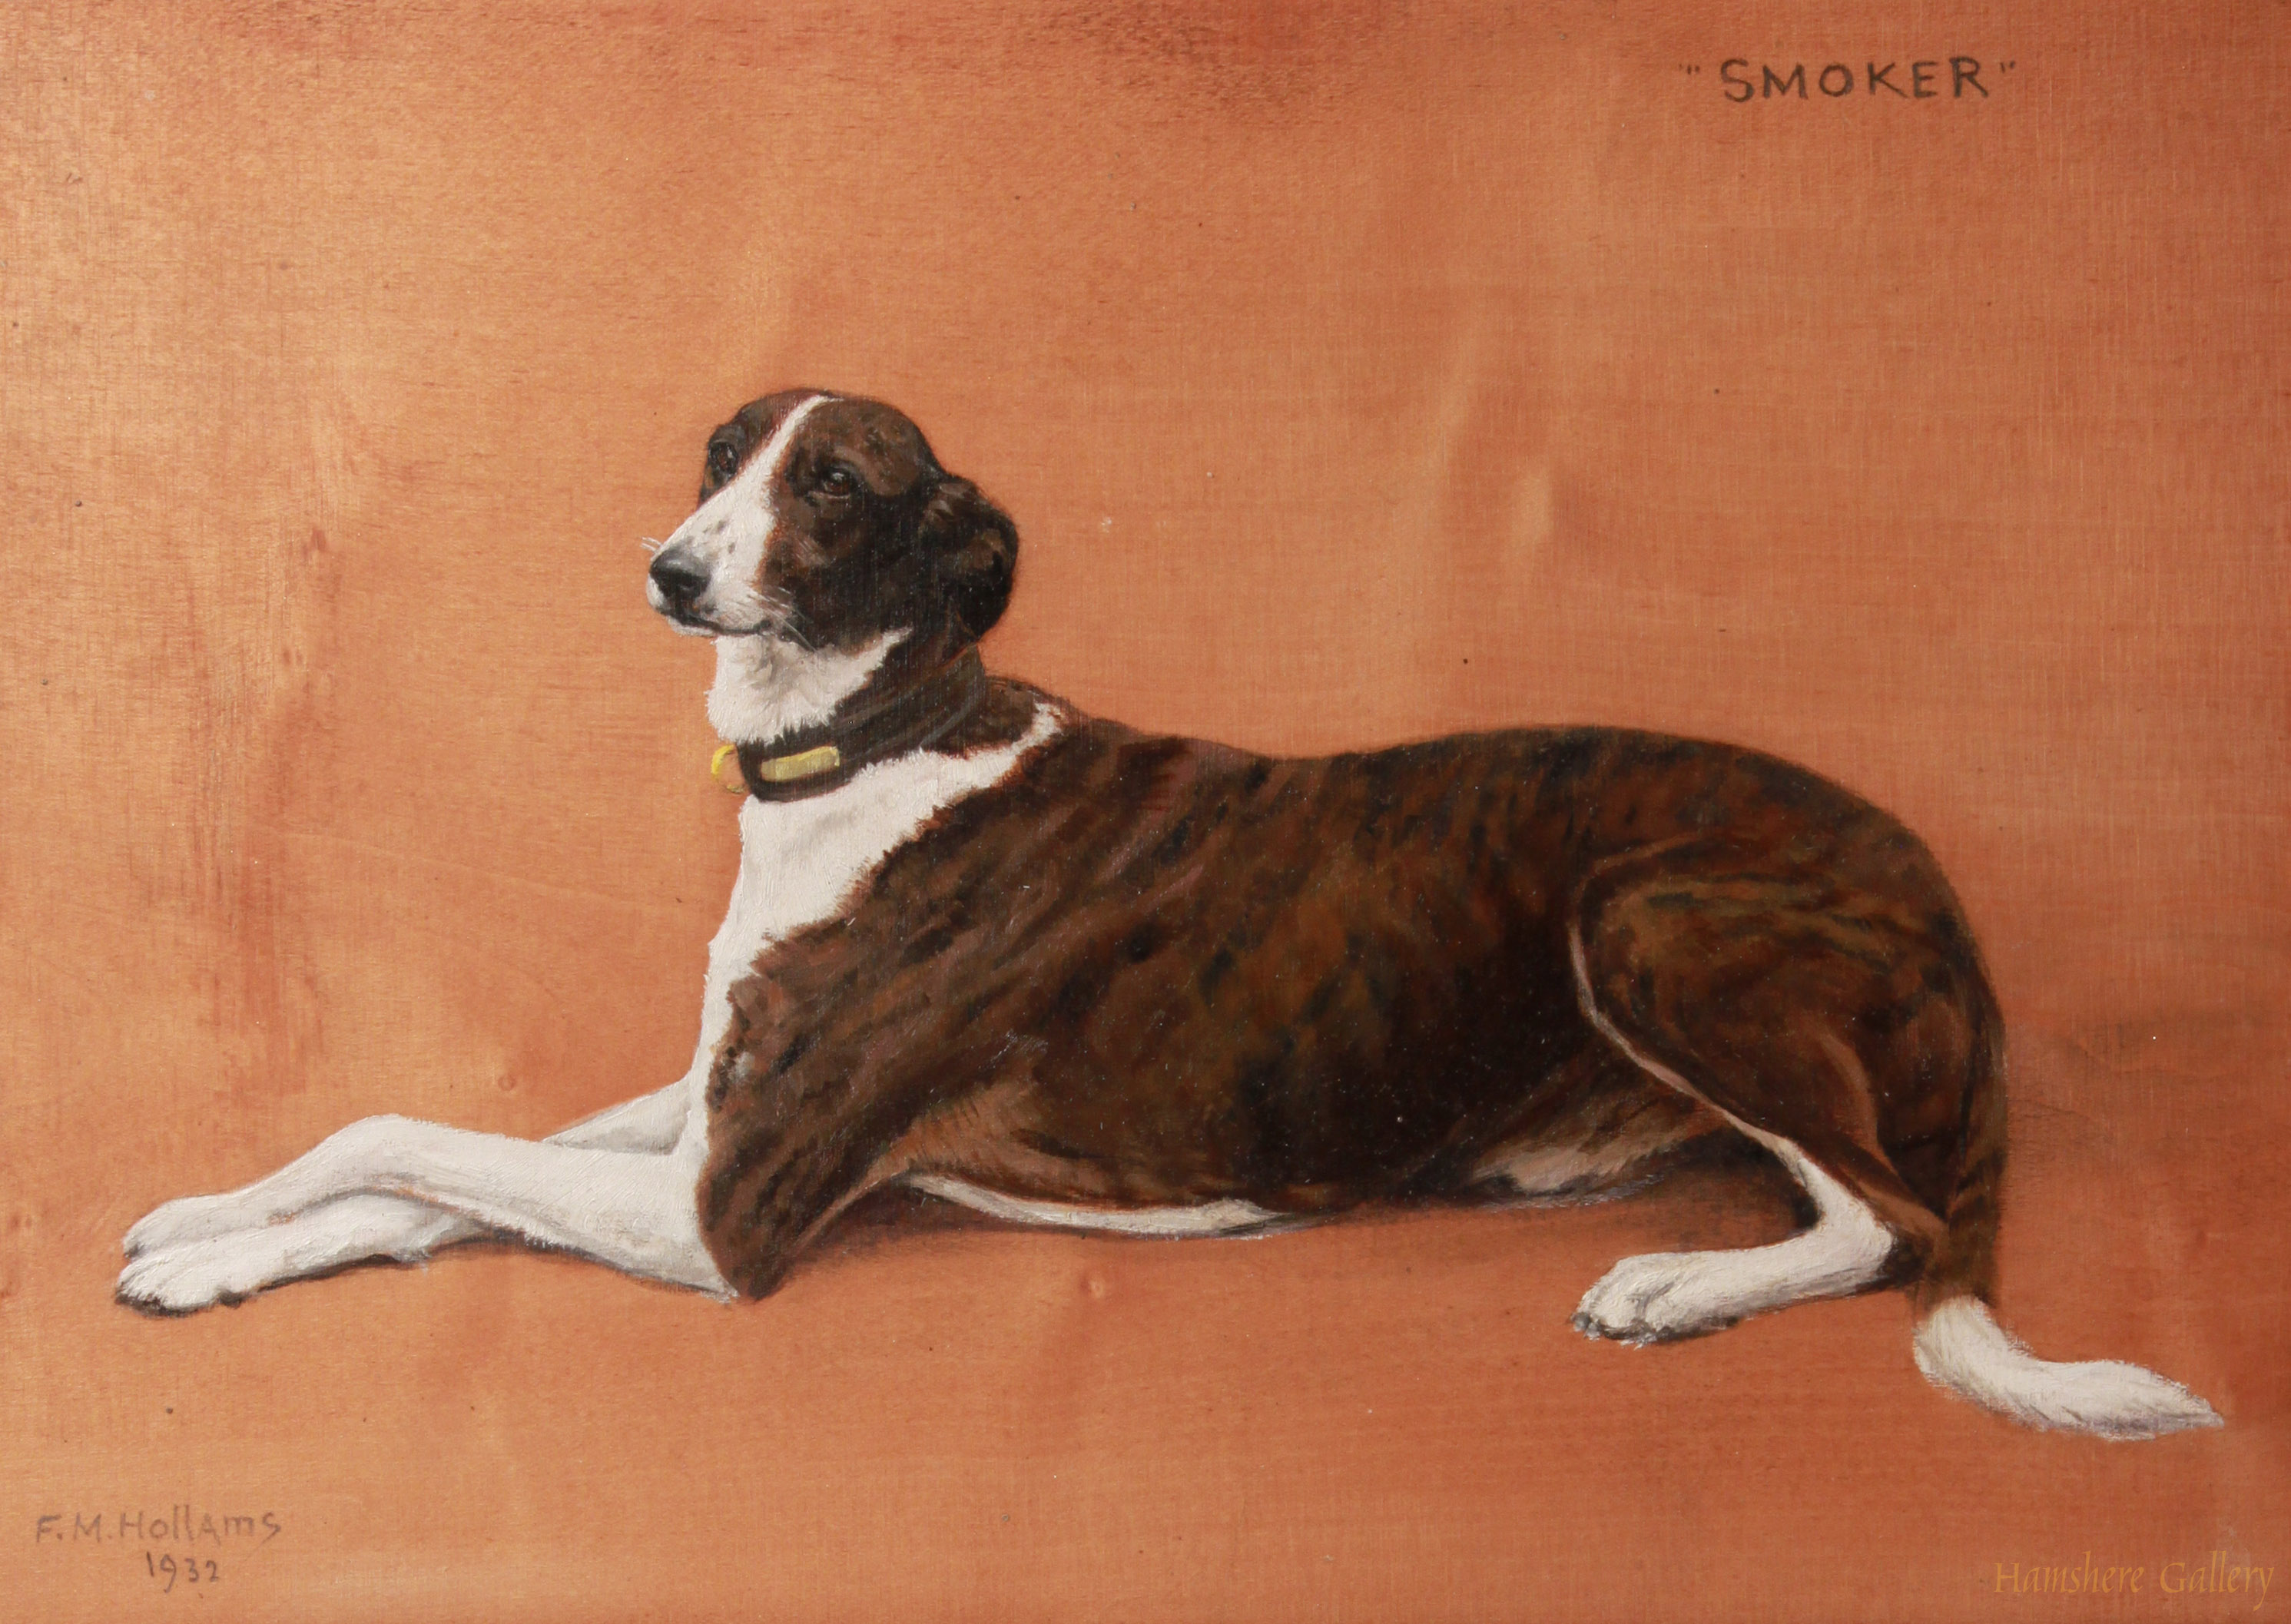 Click to see full size: Greyhound �Smoker� by Florence Mabel Hollams